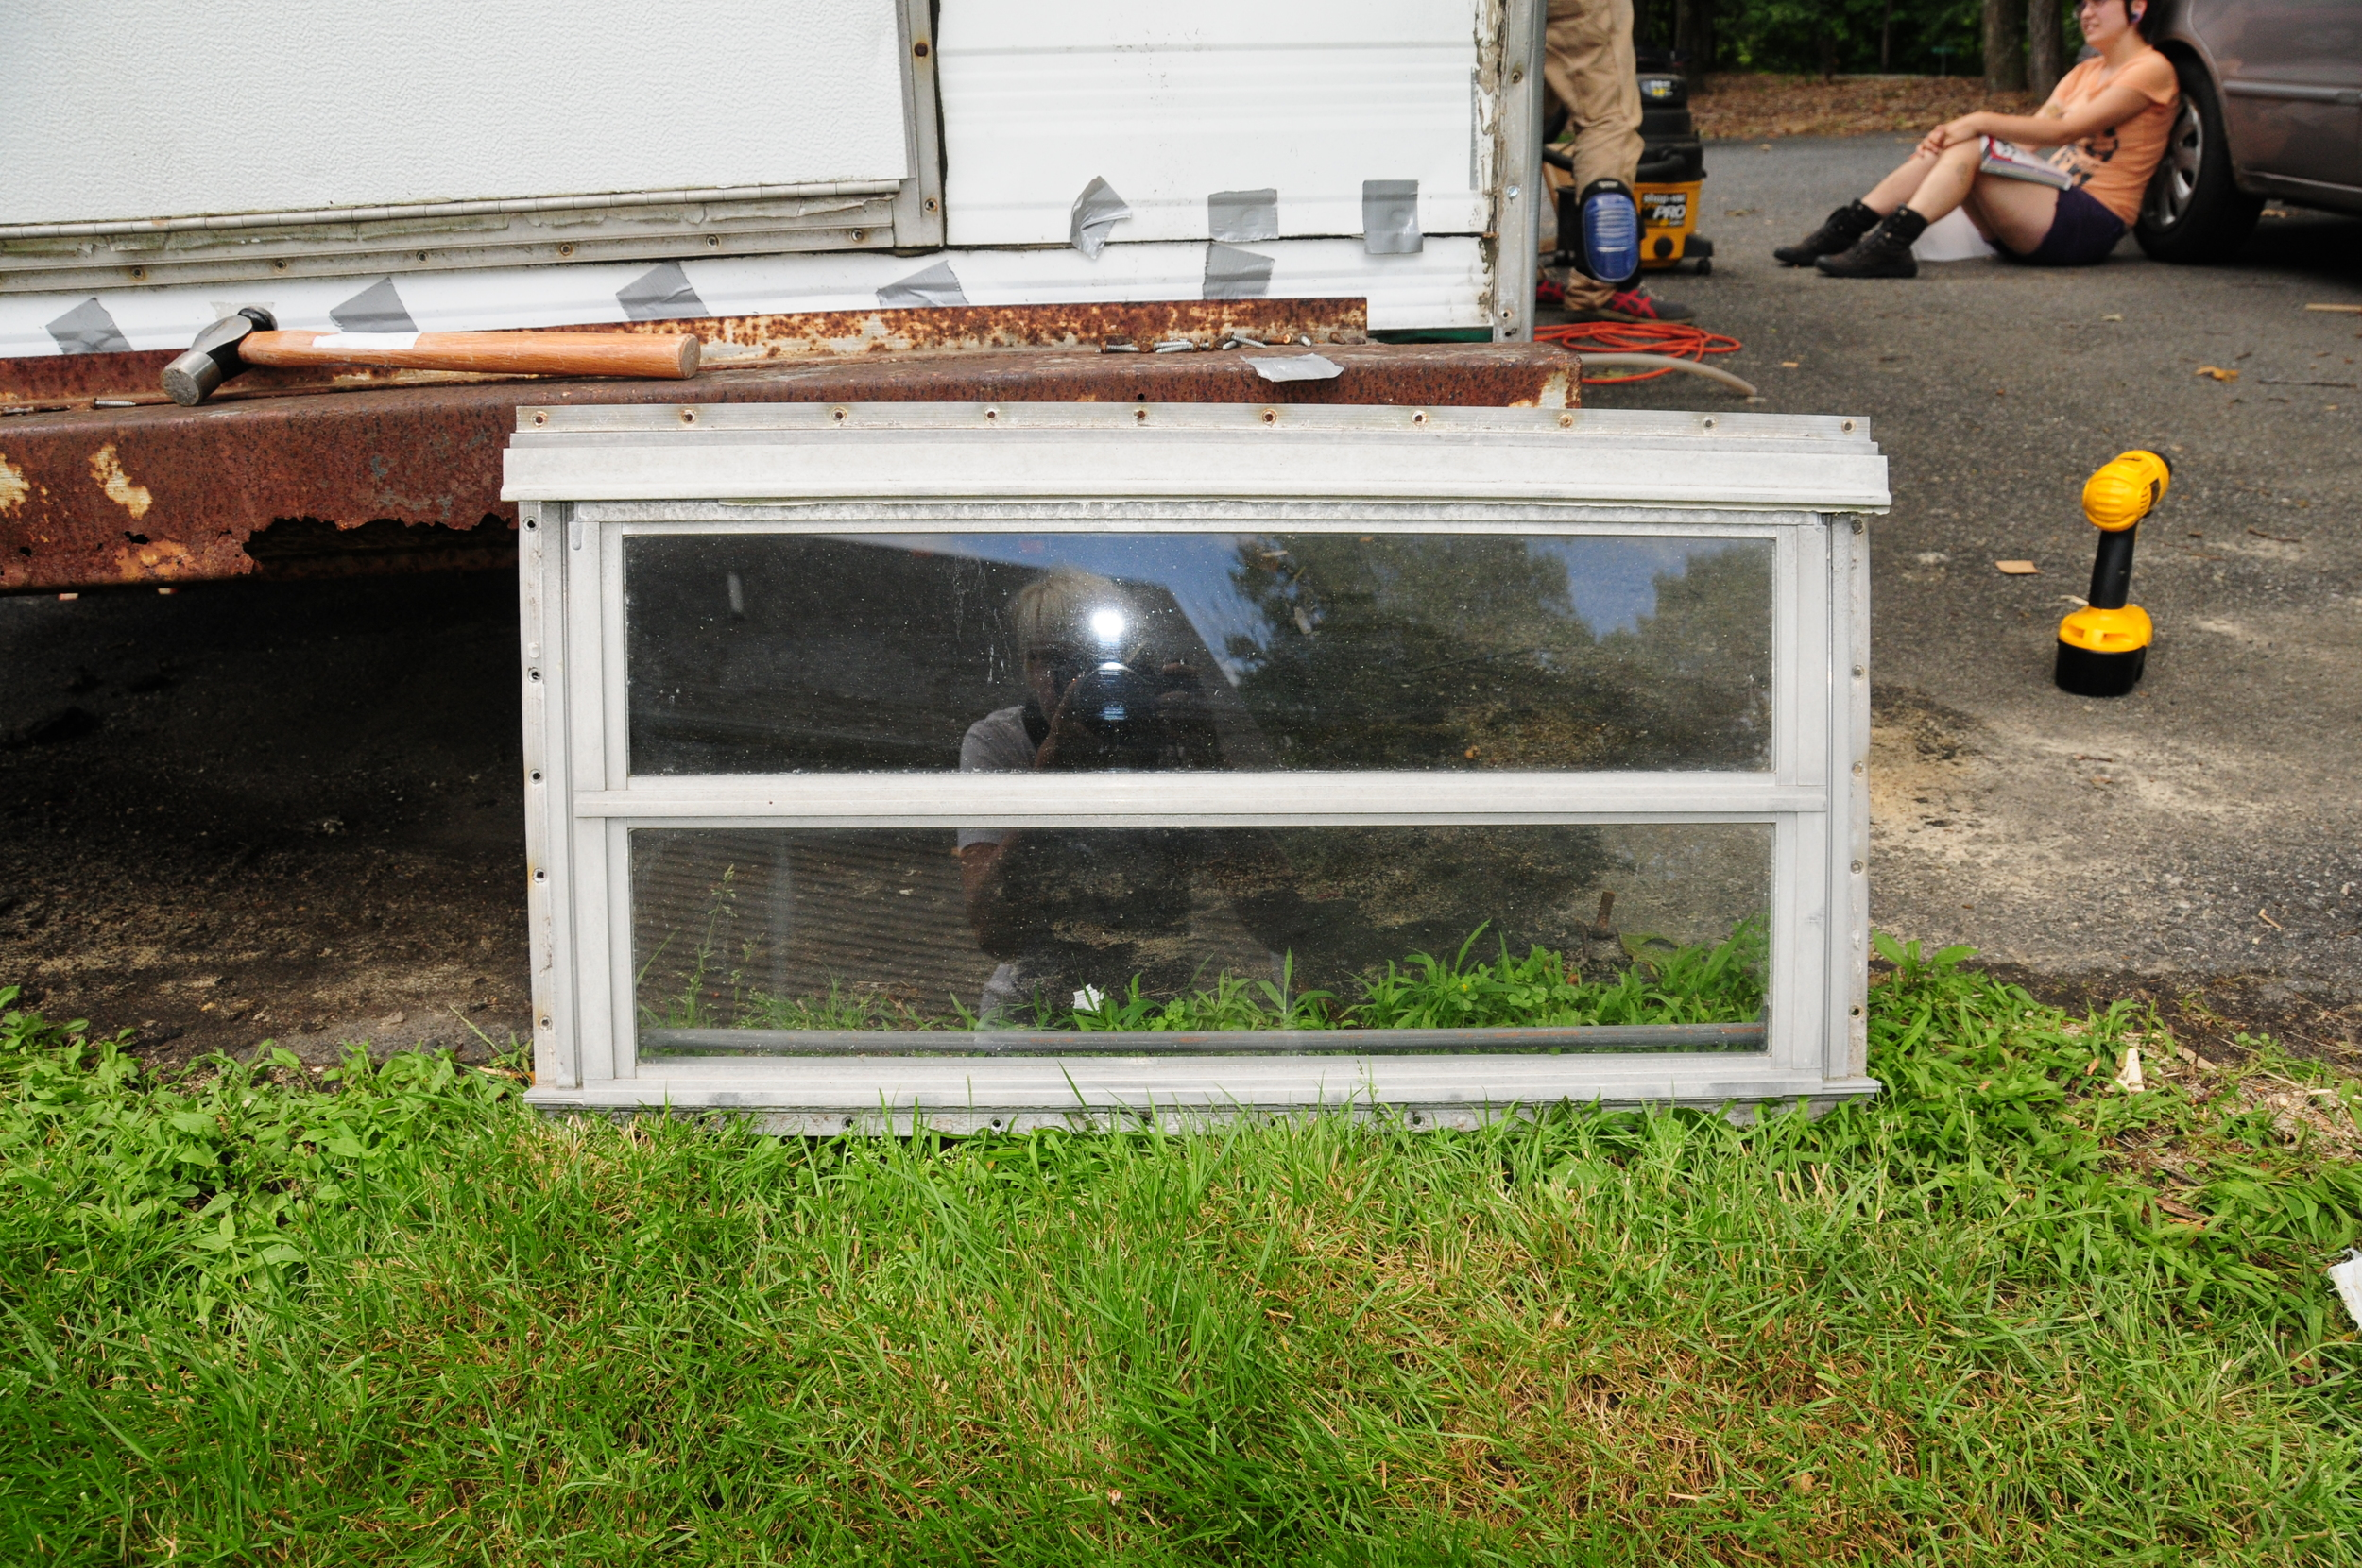 Used Campers For Sale Near Me >> Replacing a Window in a Vintage Trailer: Thank You ...